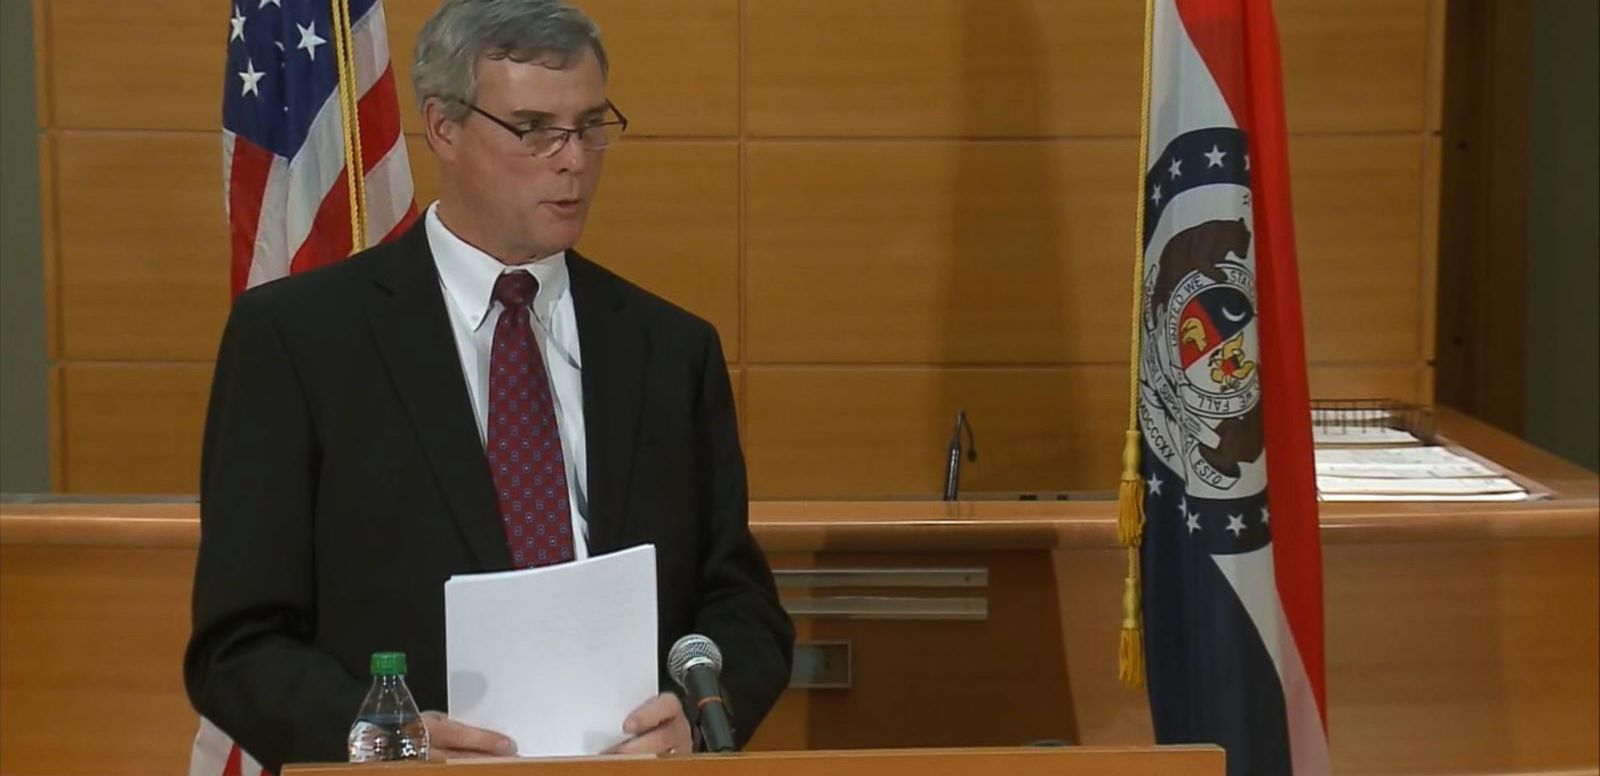 VIDEO: The grand jurys decision is announced in the death of unarmed teenager Michael Brown.